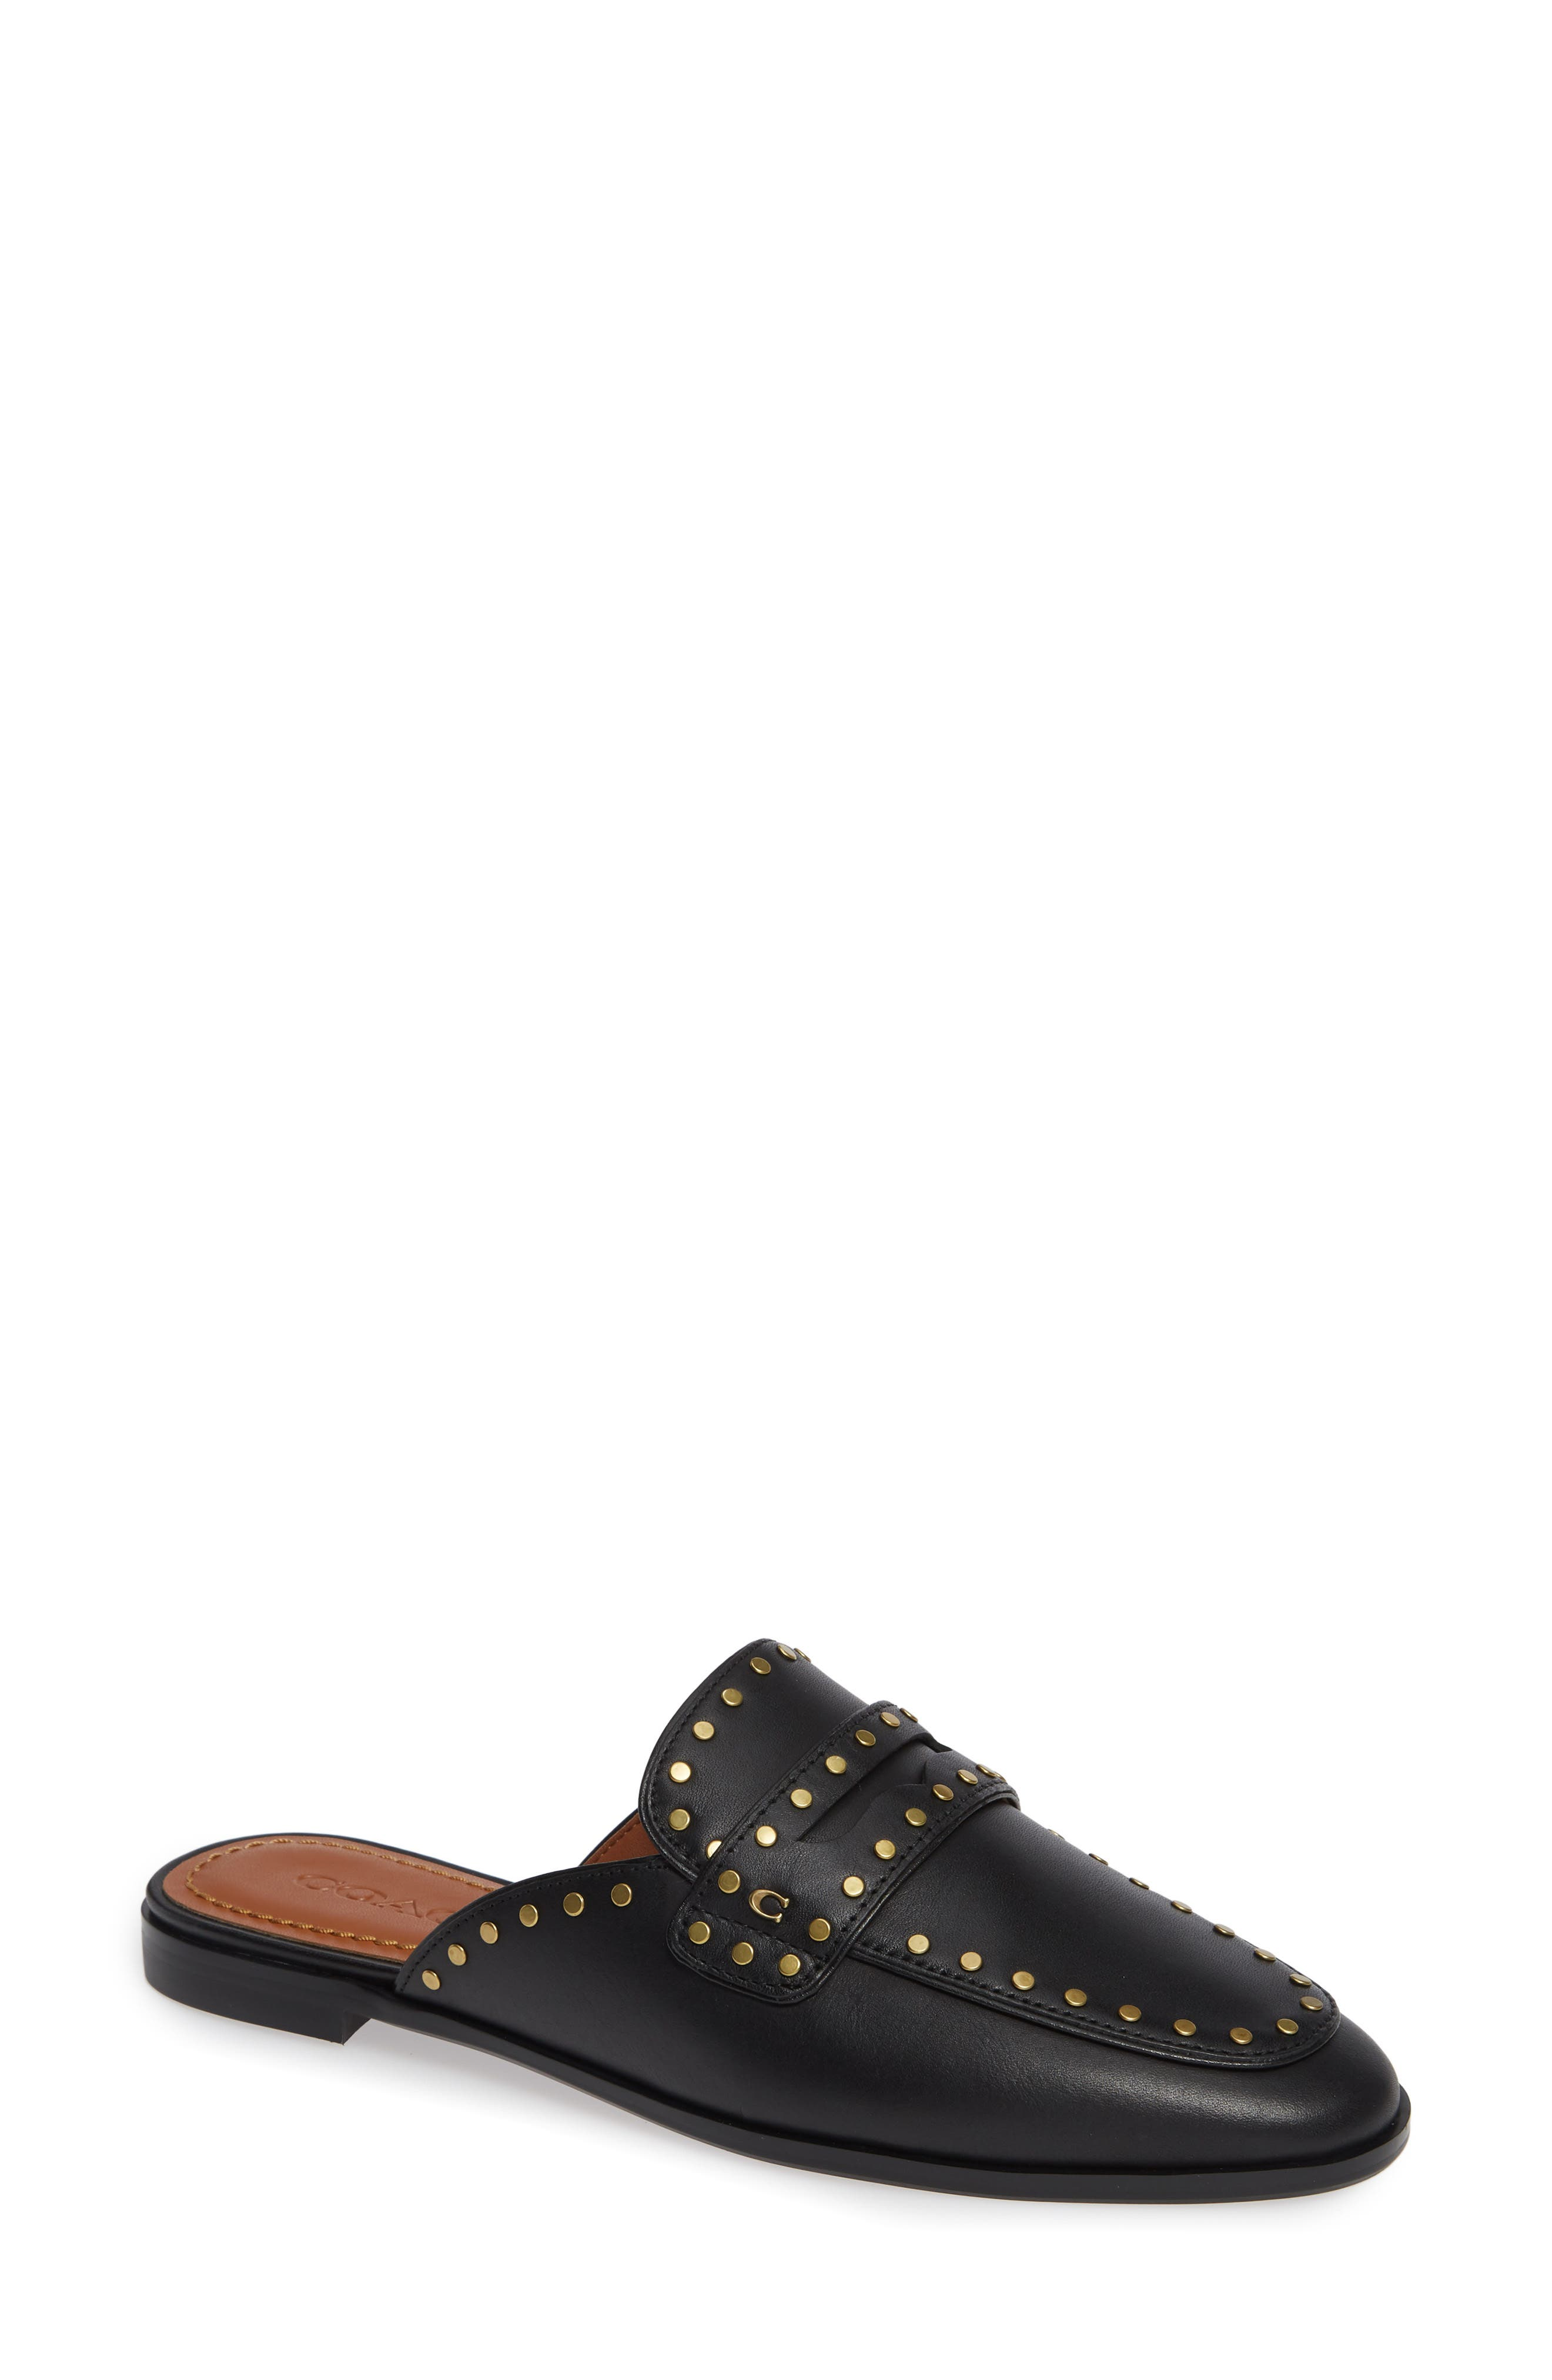 Fiona Loafer Mule,                         Main,                         color, 001